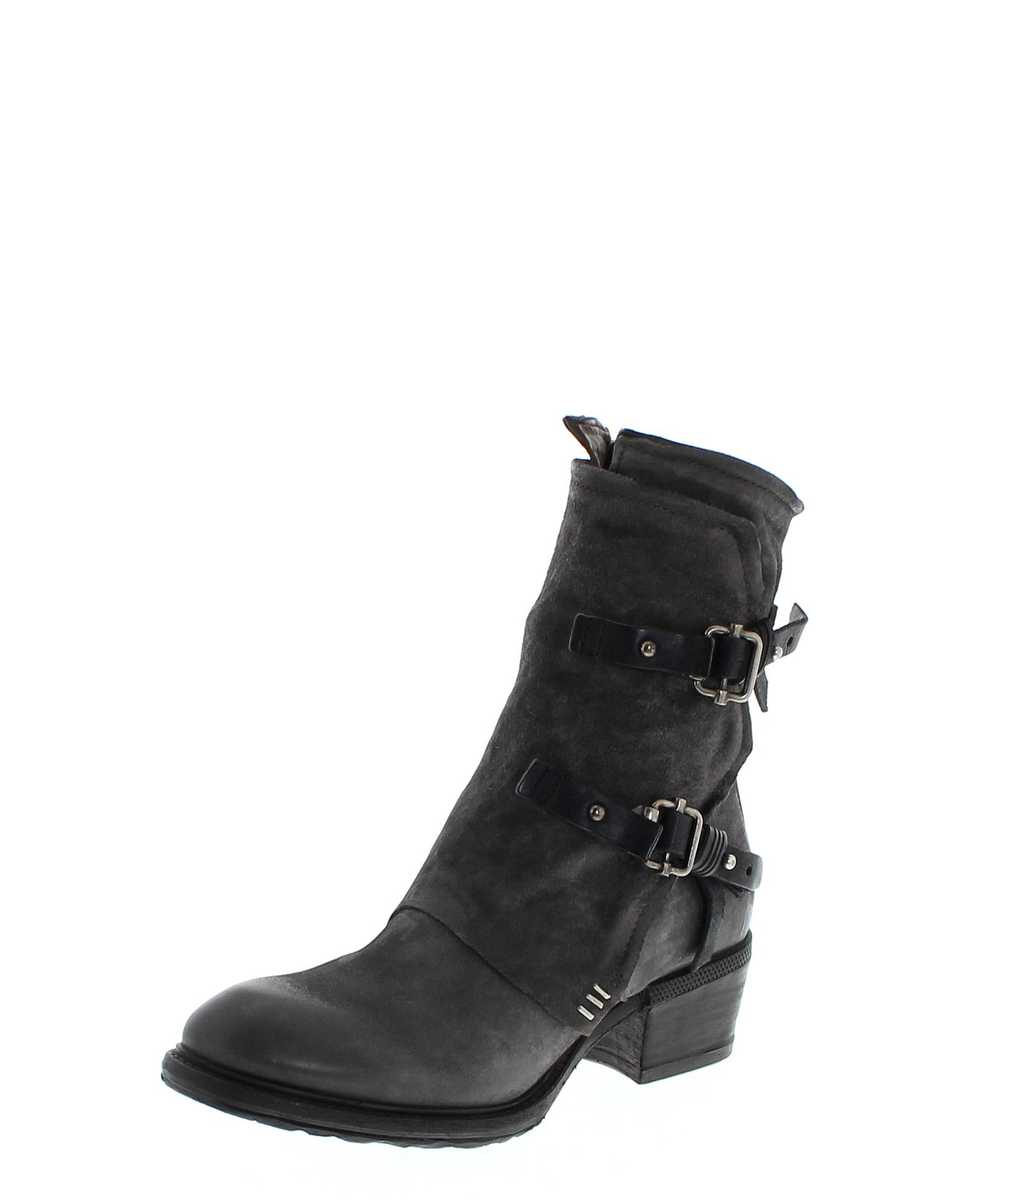 A.S.98 260206 Nebbia Nero Ankle Boot - grey